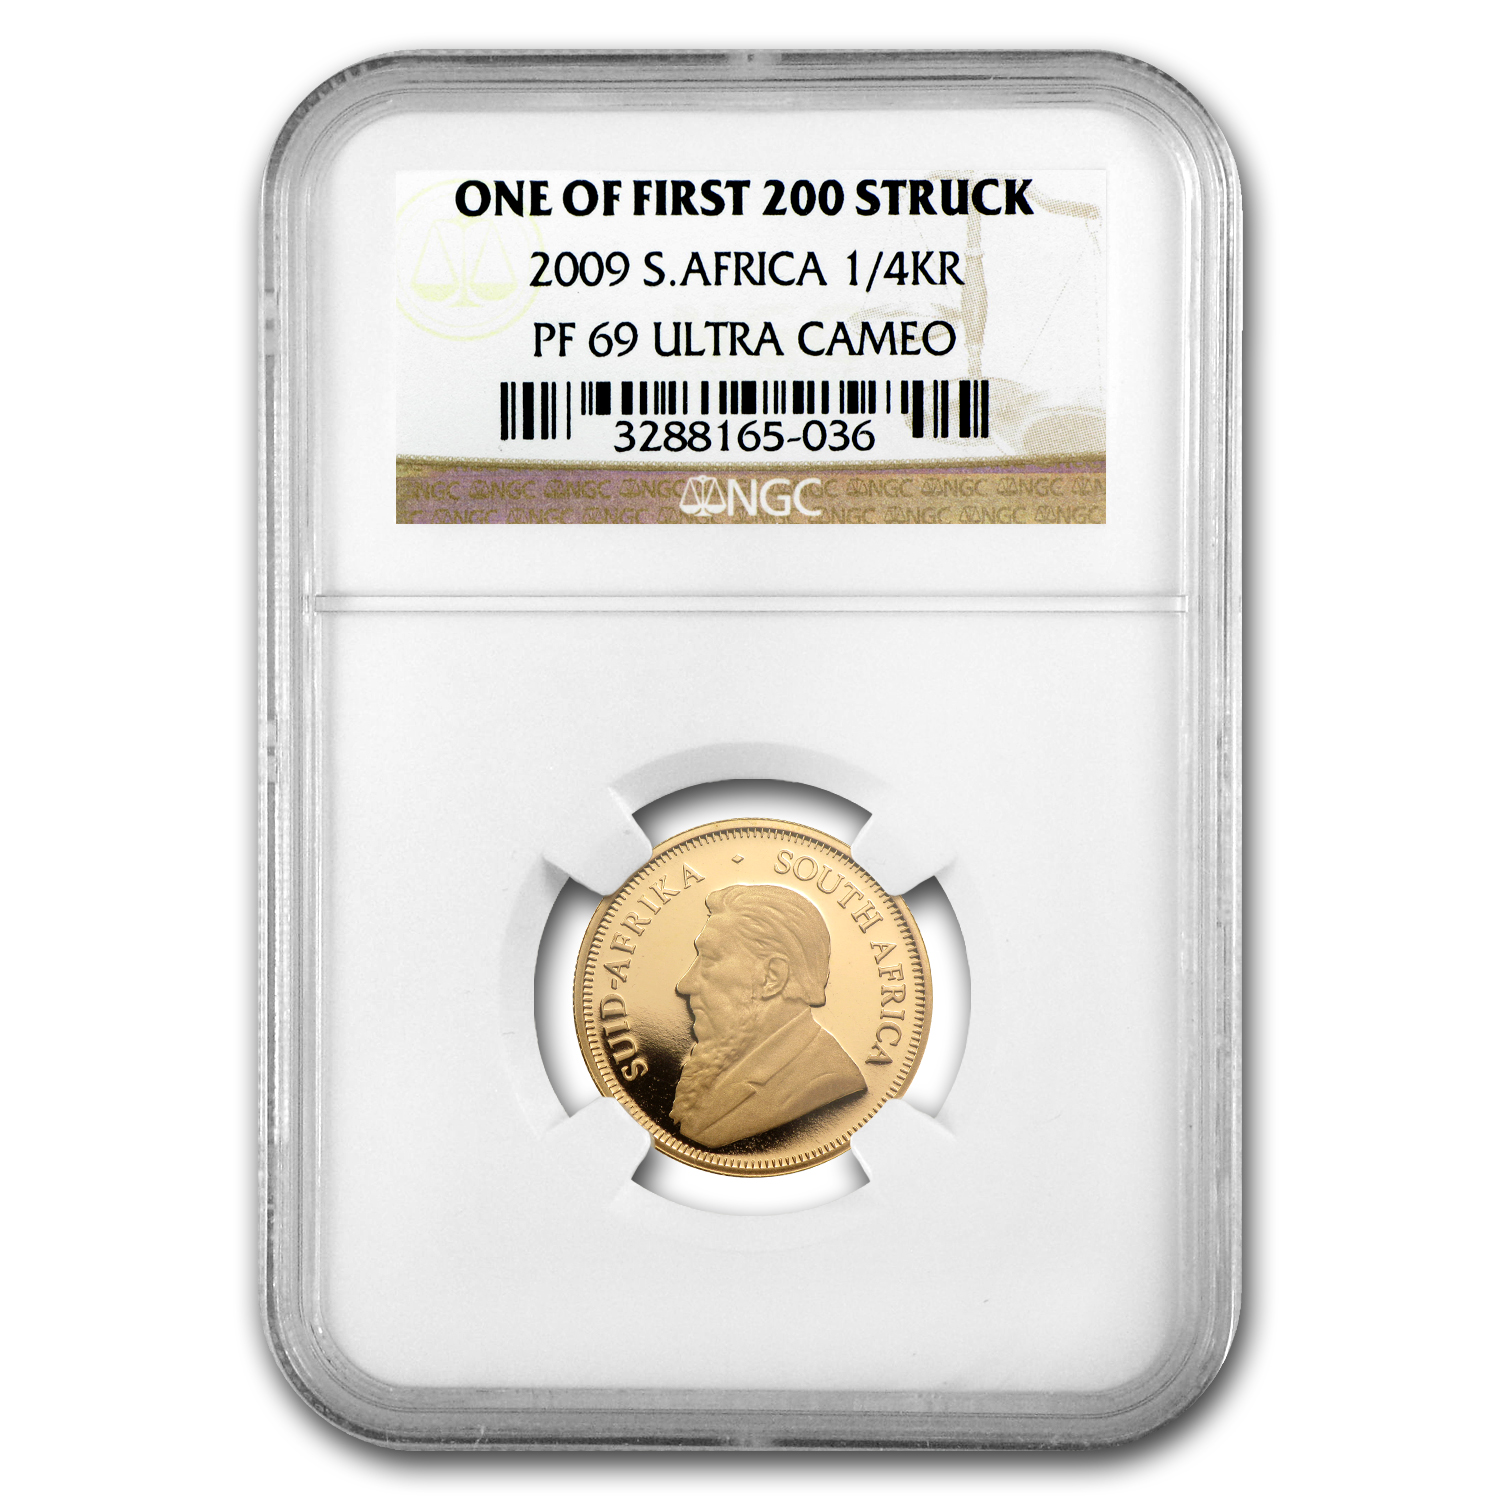 2009 South Africa 1/4 oz Gold Krugerrand PF-69 NGC (One/1st 200)